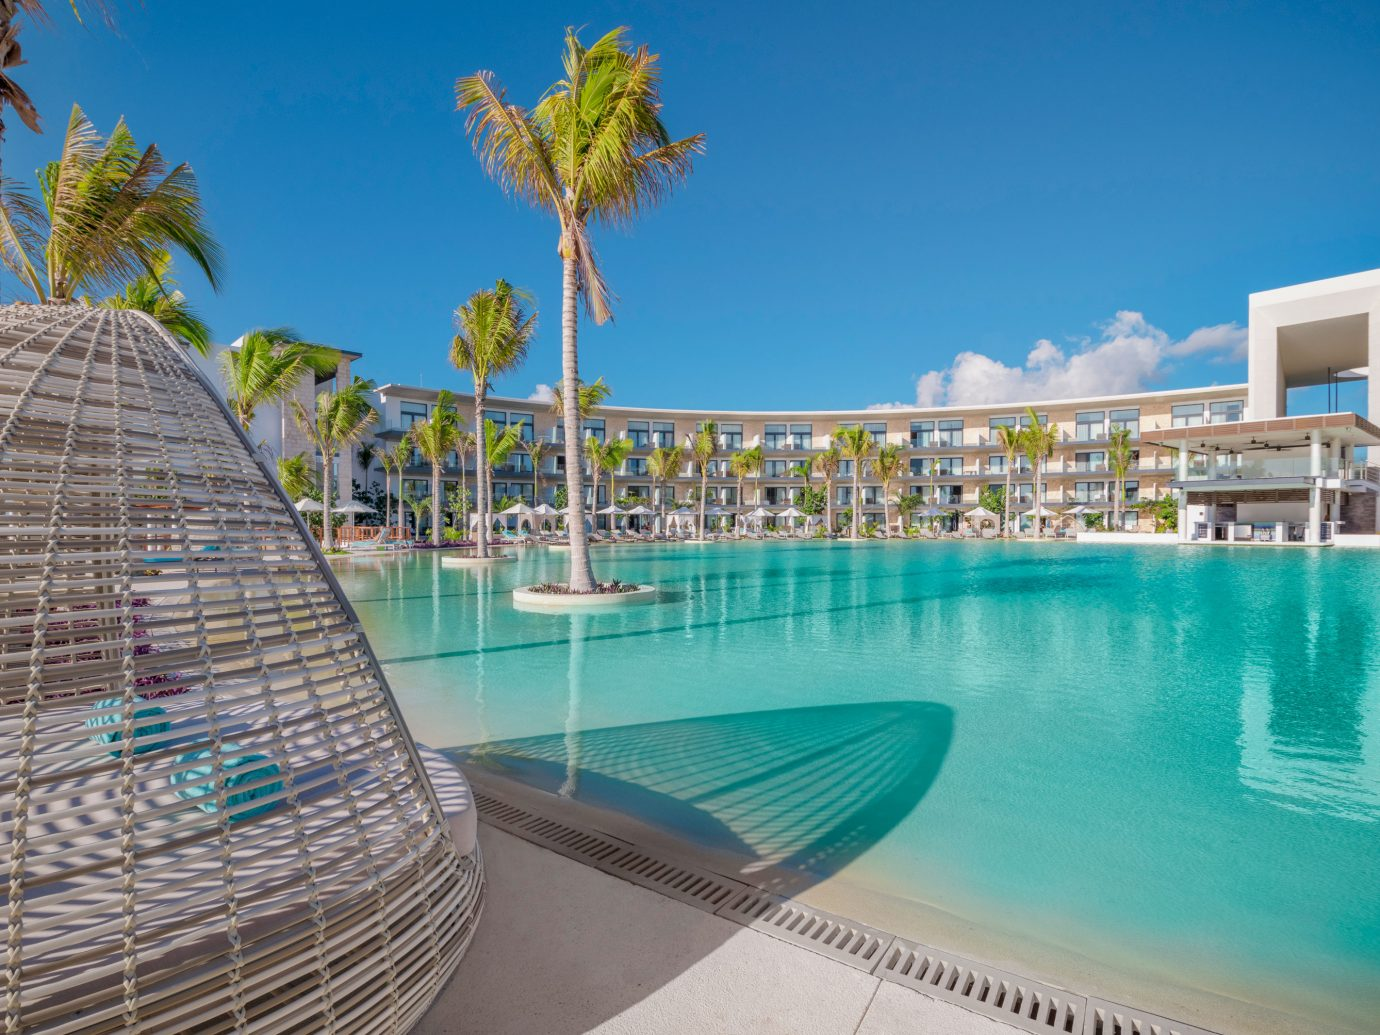 Pool at Haven Riviera Cancun, Mexico